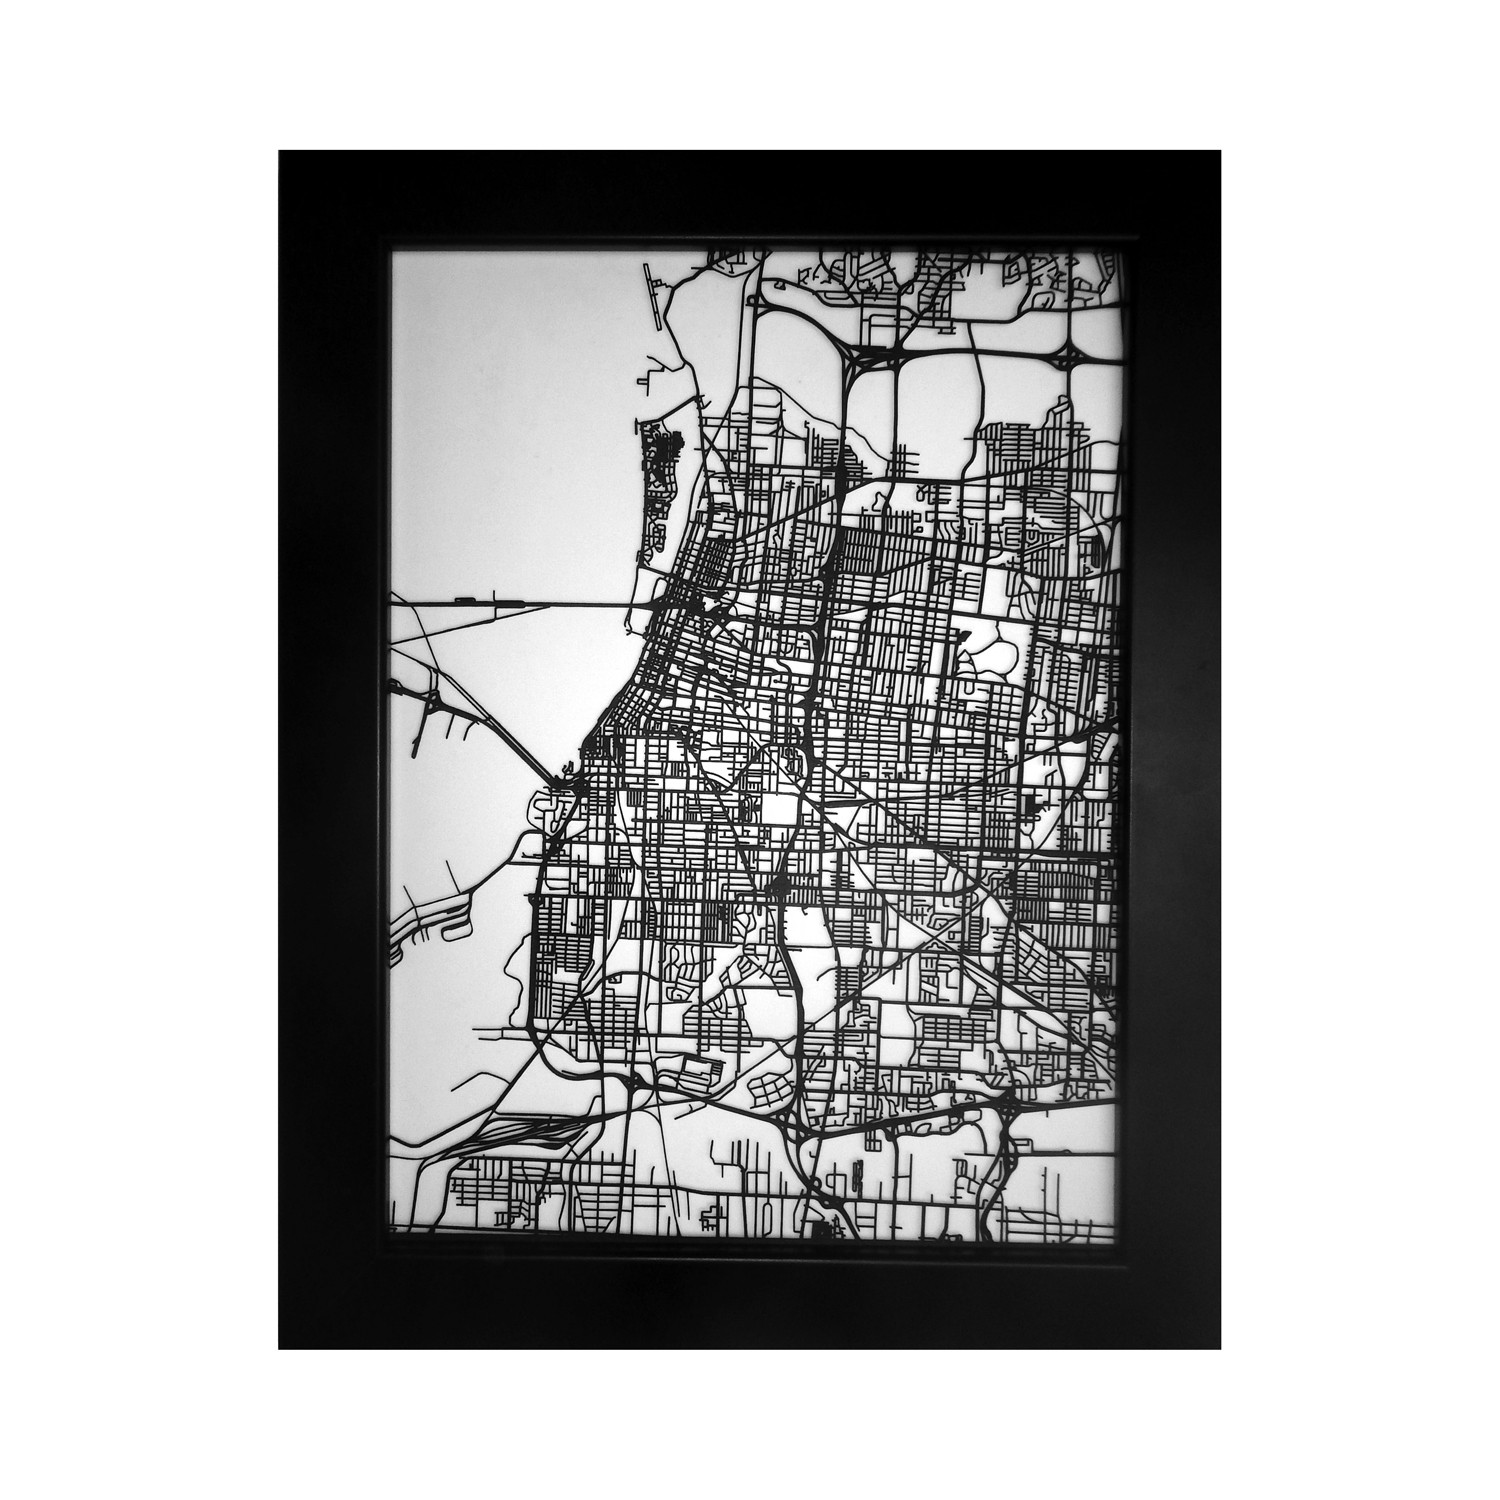 Memphis Street Map Size 11x14 CarbonLight Touch of Modern